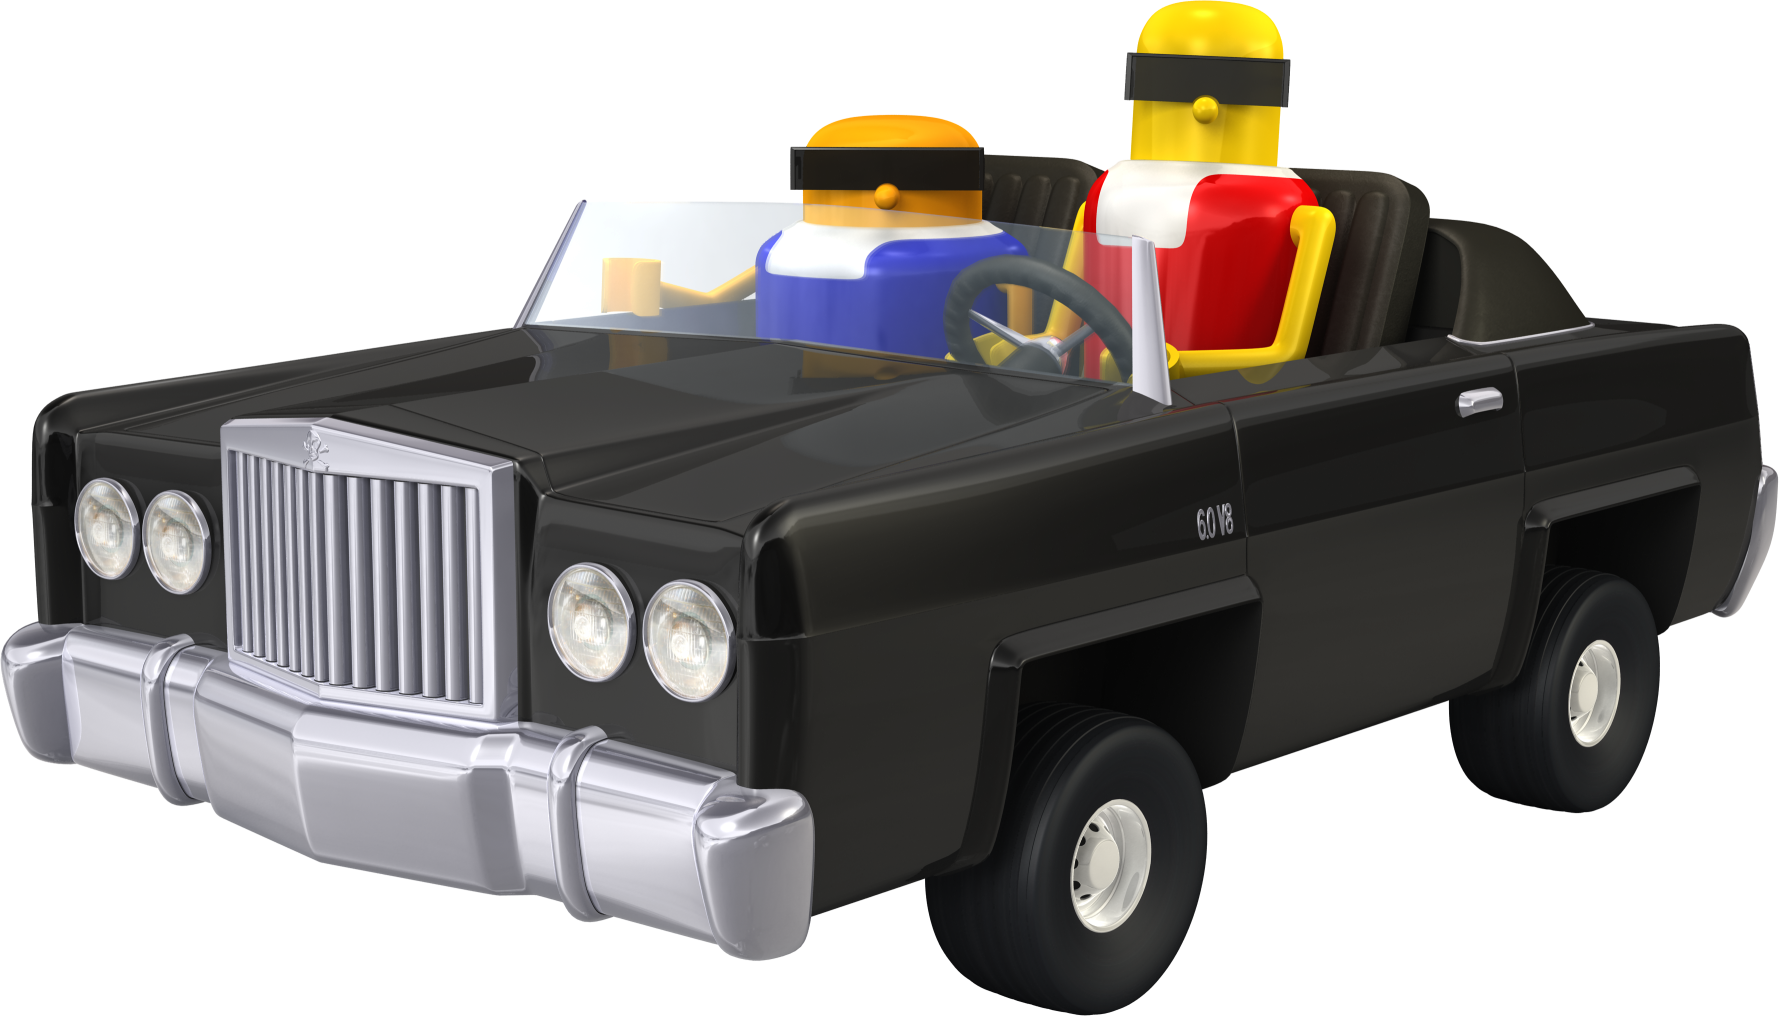 Lego car clipart clipart library download Image - Bonanza Bros. in the Get-a-Way Wagon.png | Life of Heroes RP ... clipart library download